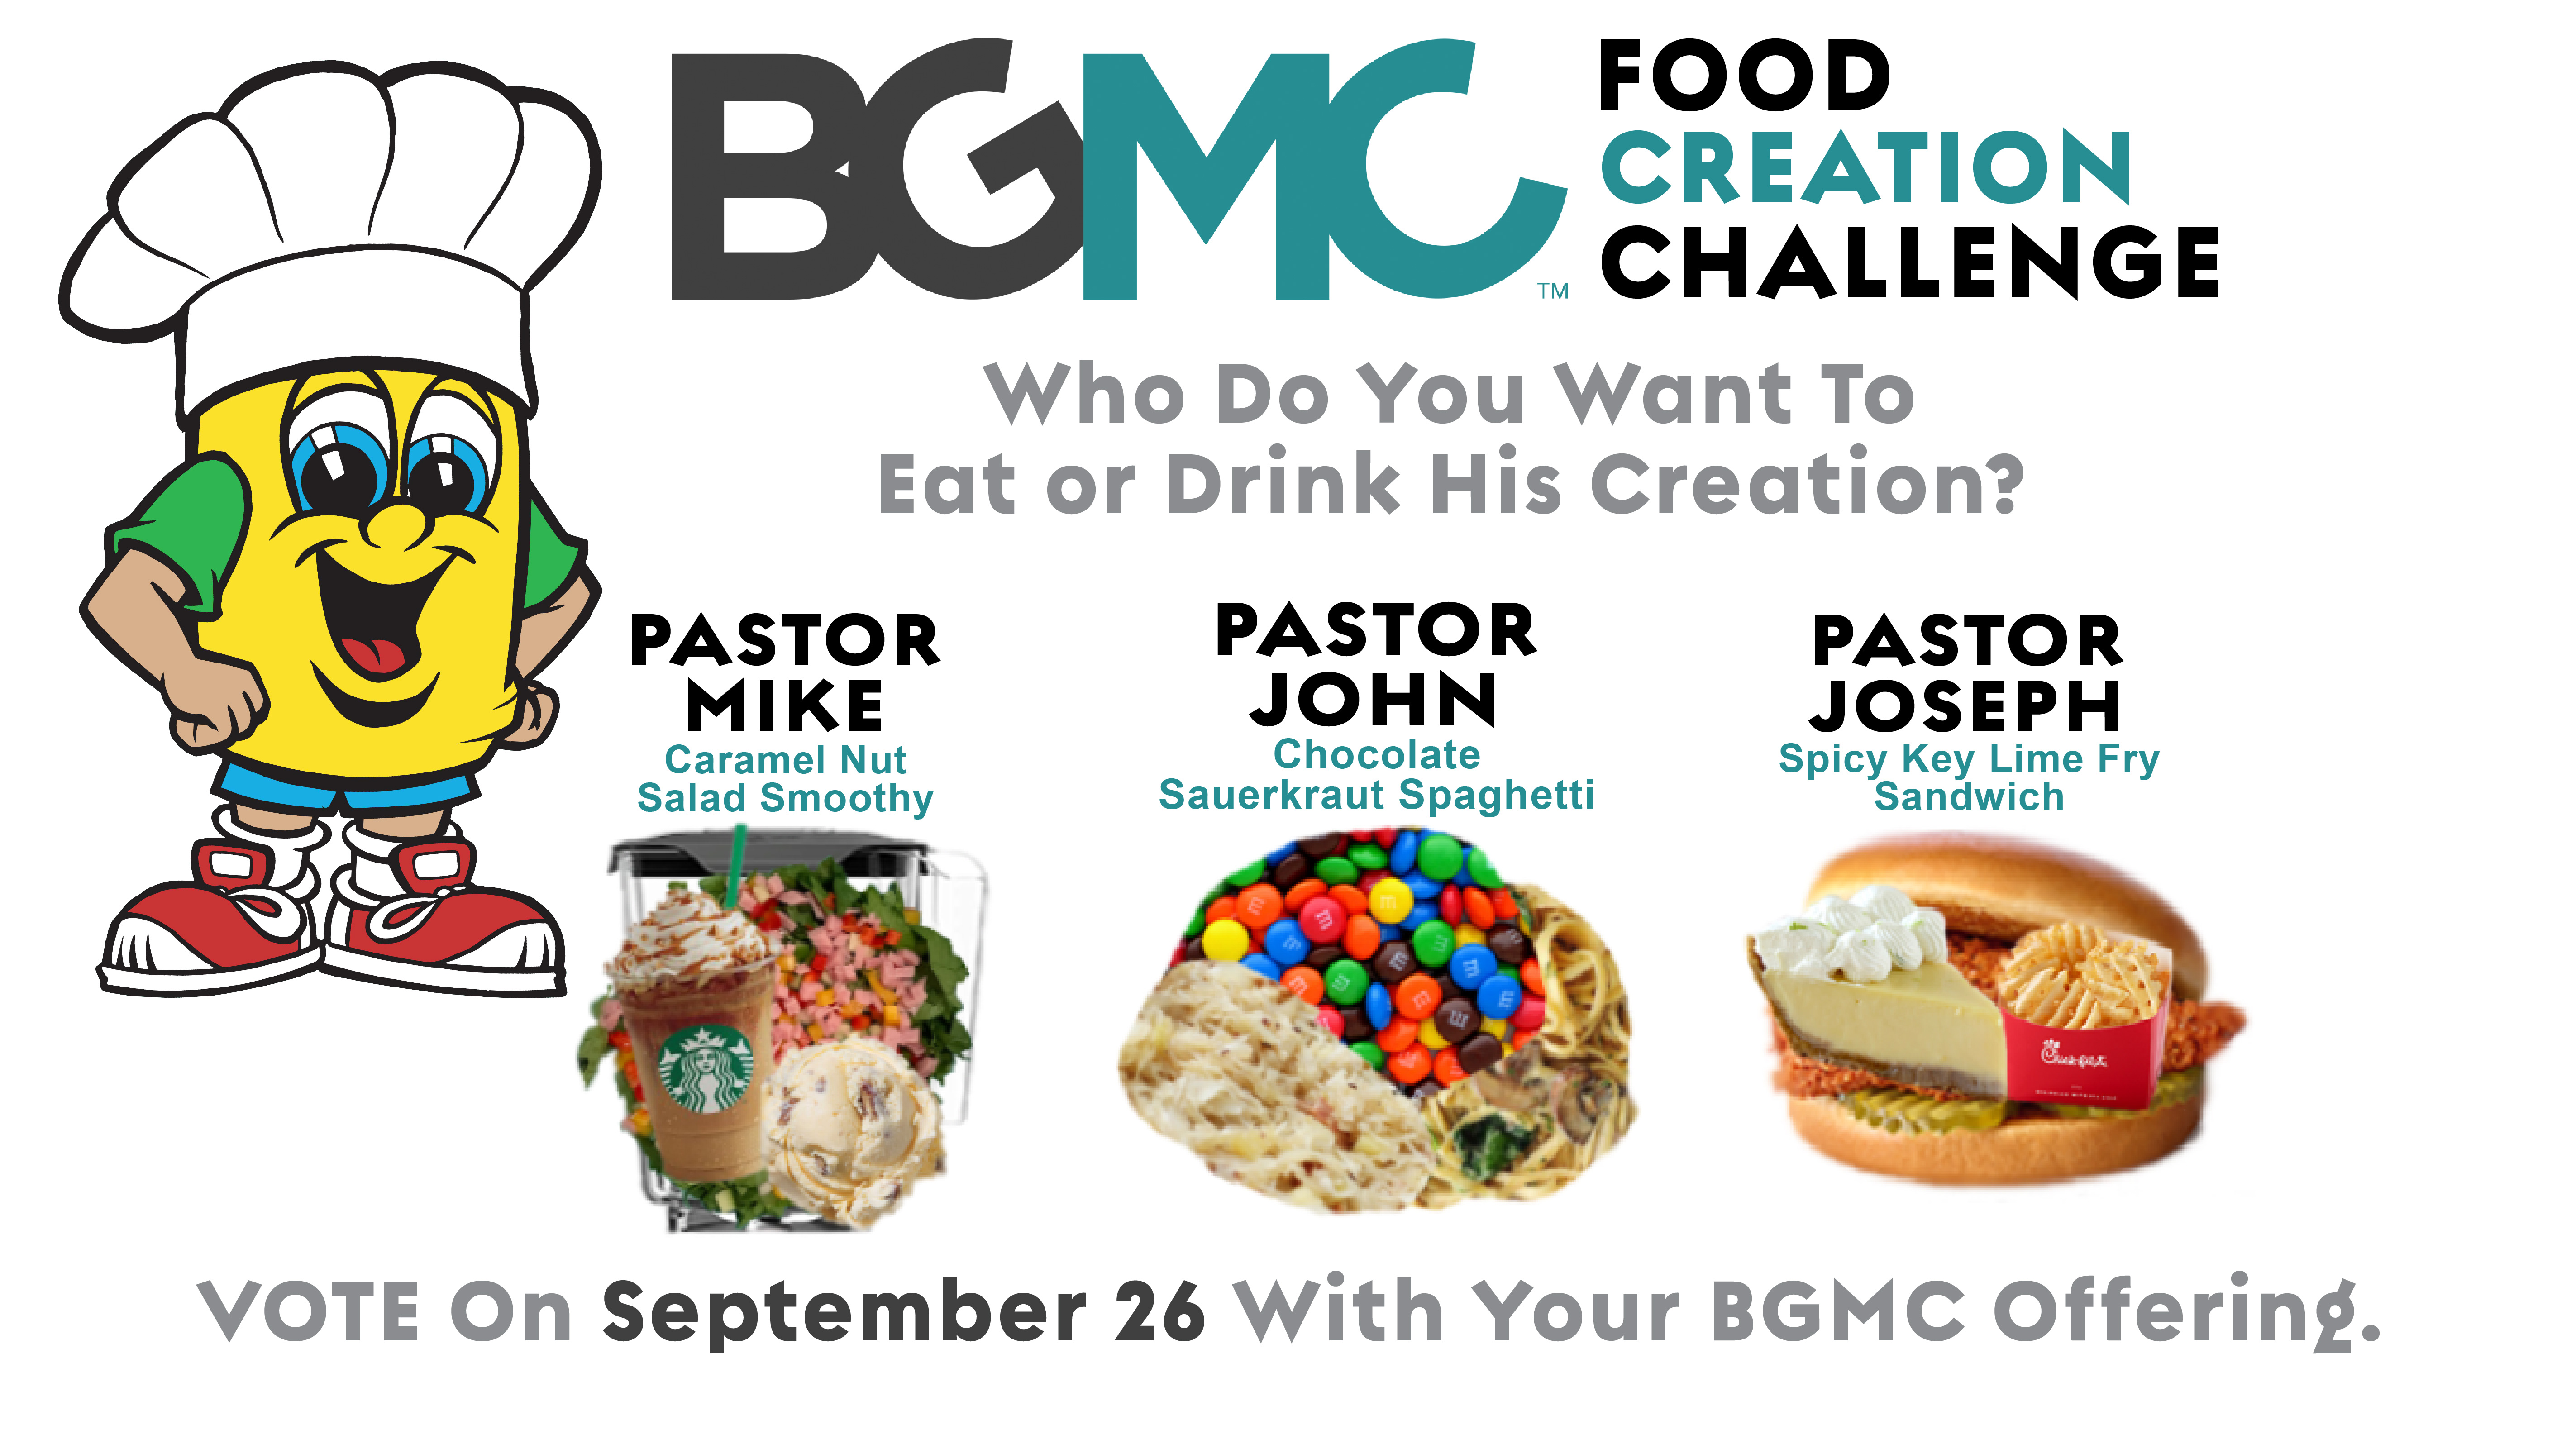 BGMC Food Creation Challenge - Vote, with your BGMC offering, for which Pastor you want to see eat or drink his creation.  The Pastor receiving the most offering will eat/drink his creation the following Sunday.